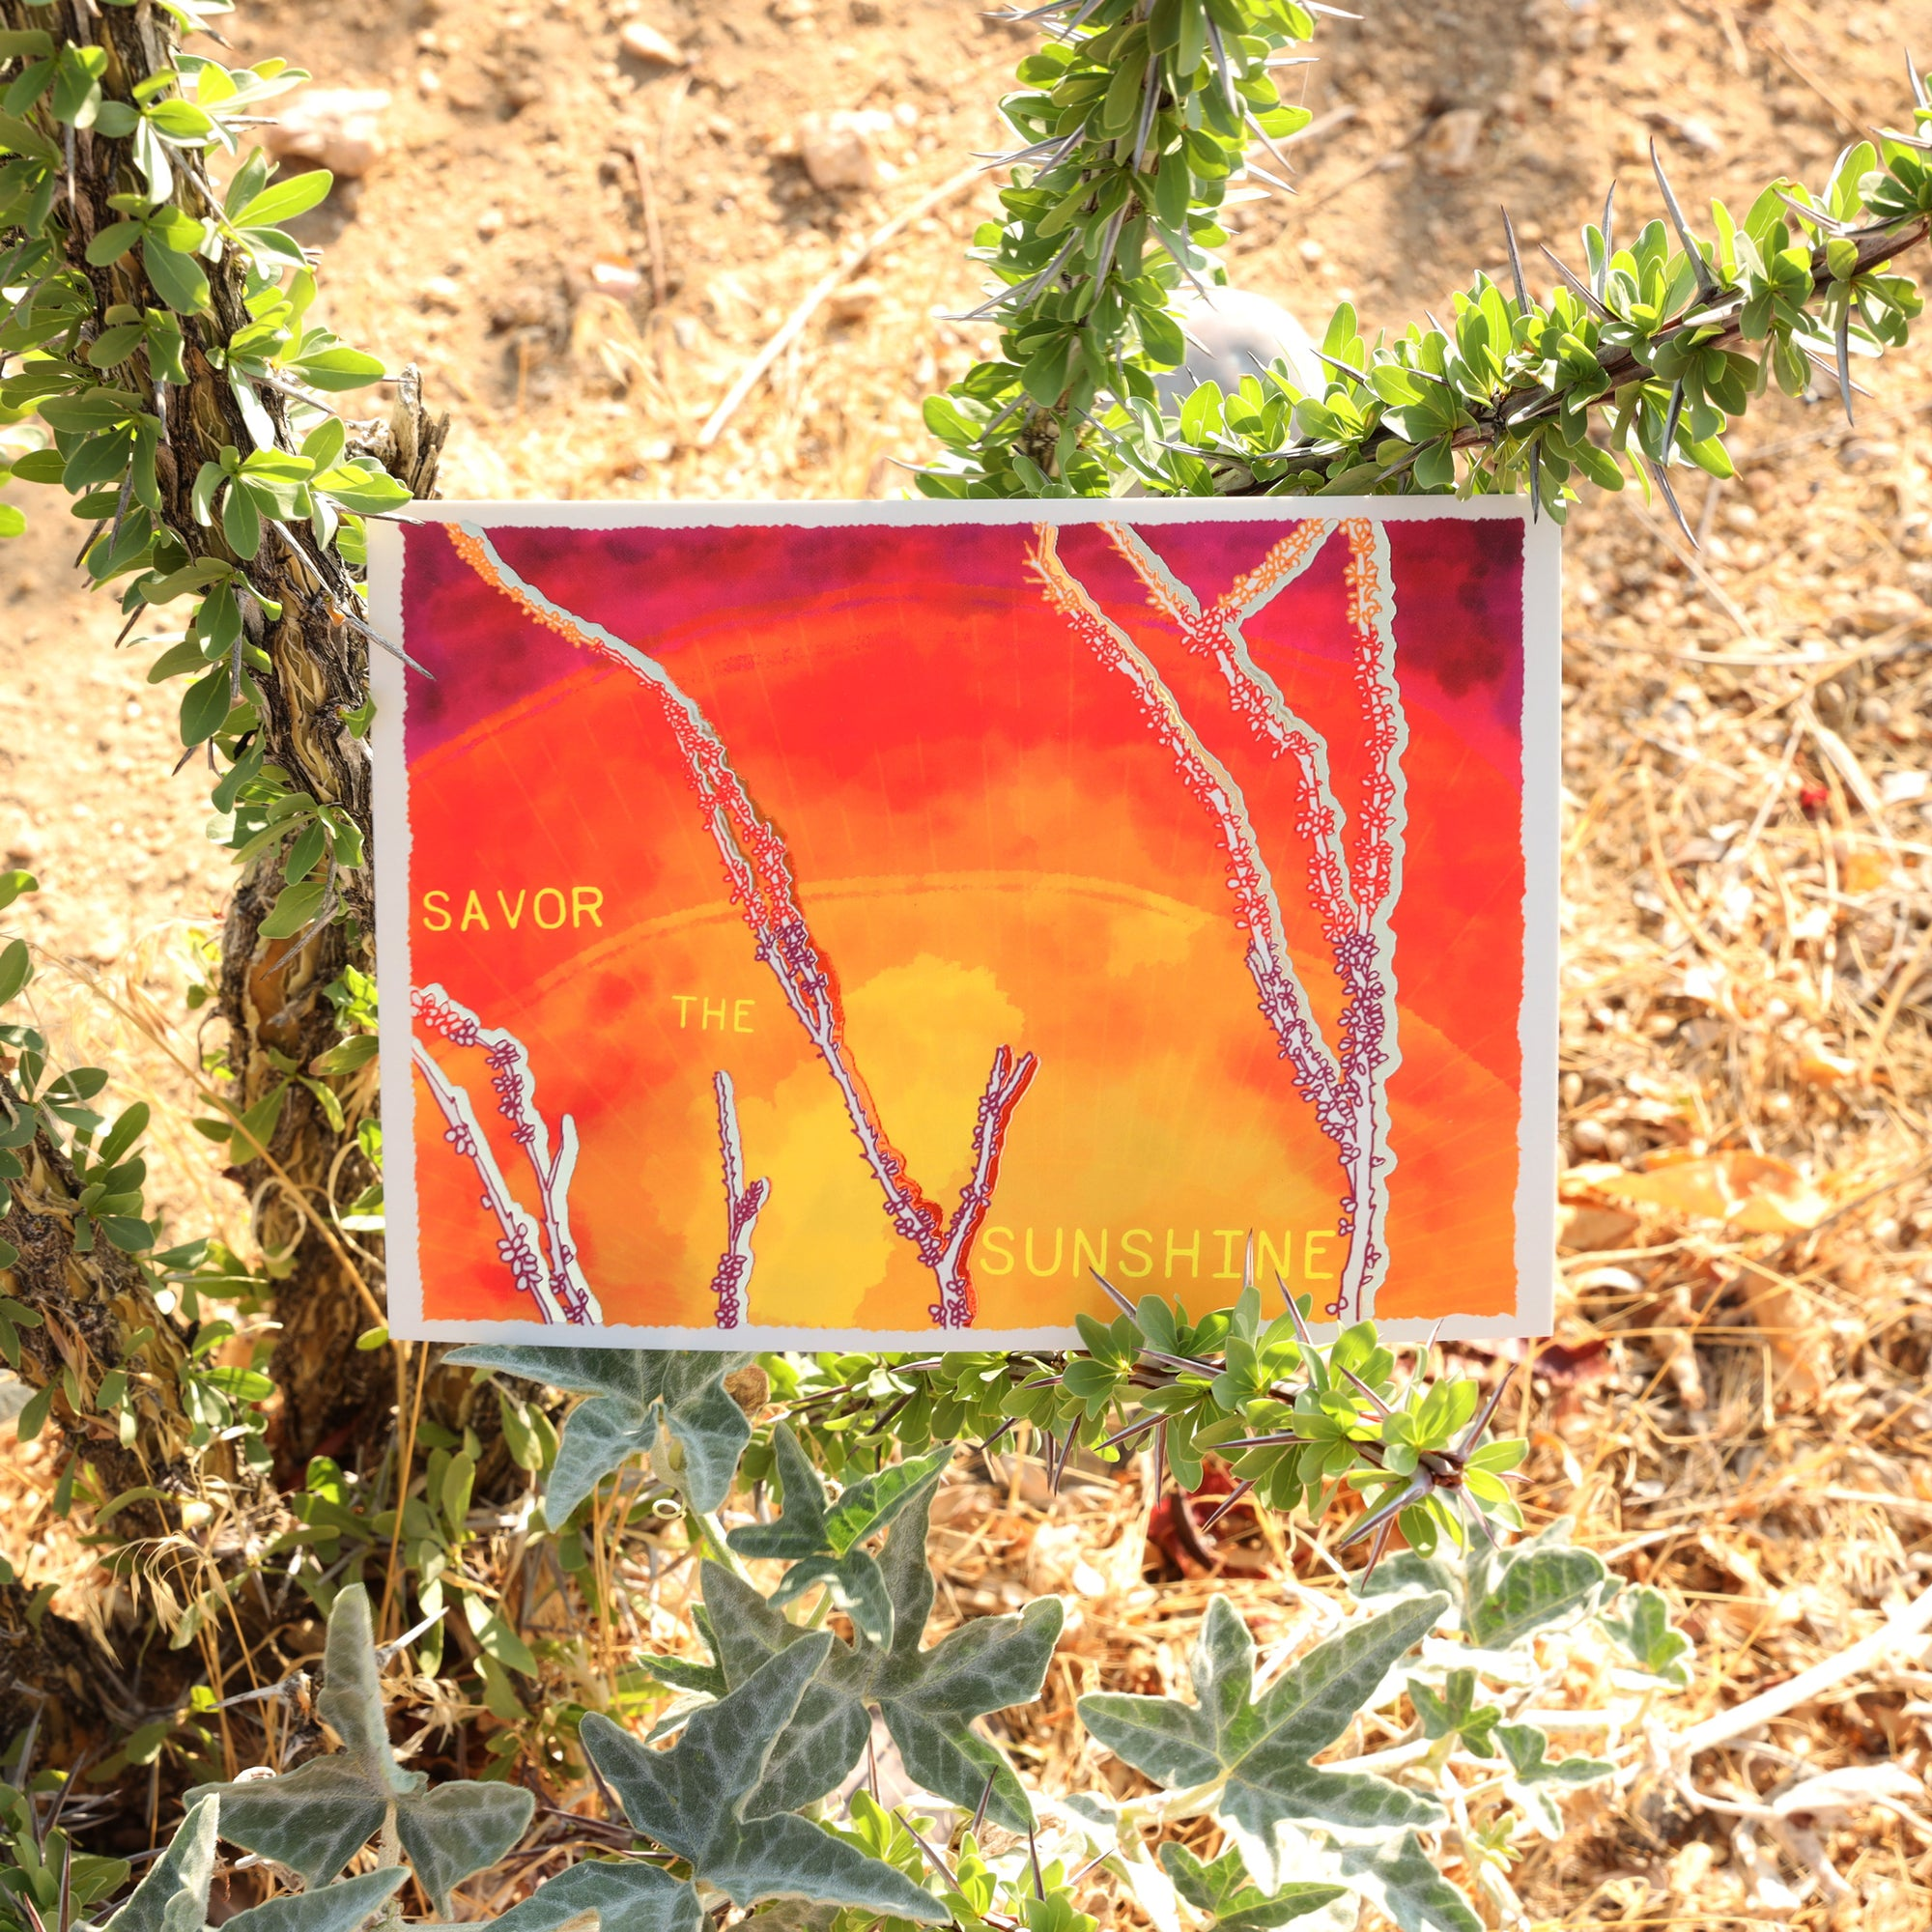 Savor the Sunshine Print on ocotillo branches